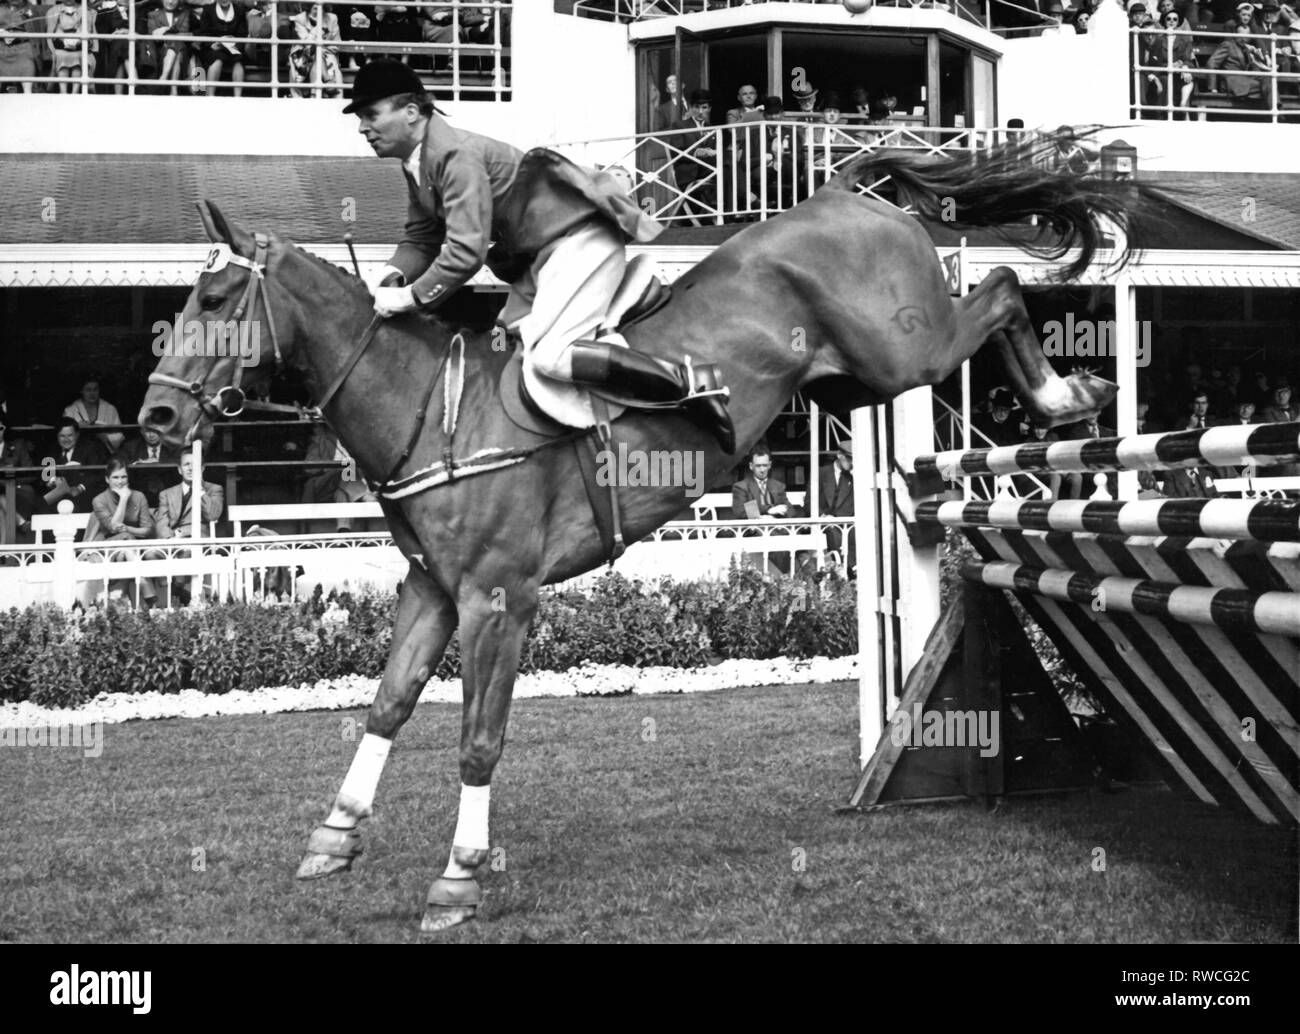 Buchwaldt, Magnus von, 4.5.1910 - 23.3.1987, German athlete (equestrian), half-length, on 'Jaspis', at show jumping, international riding event, Dublin, 3.8.1954, Additional-Rights-Clearance-Info-Not-Available - Stock Image